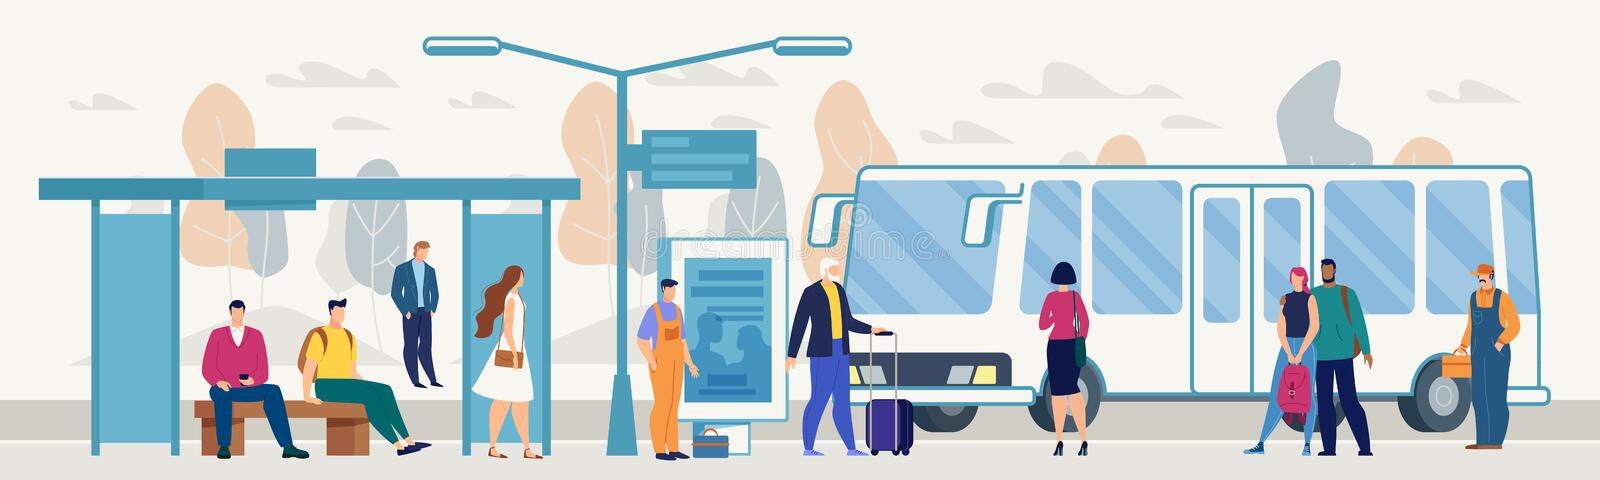 Passengers on City Bus Stop Platform Flat Vector vector illustration